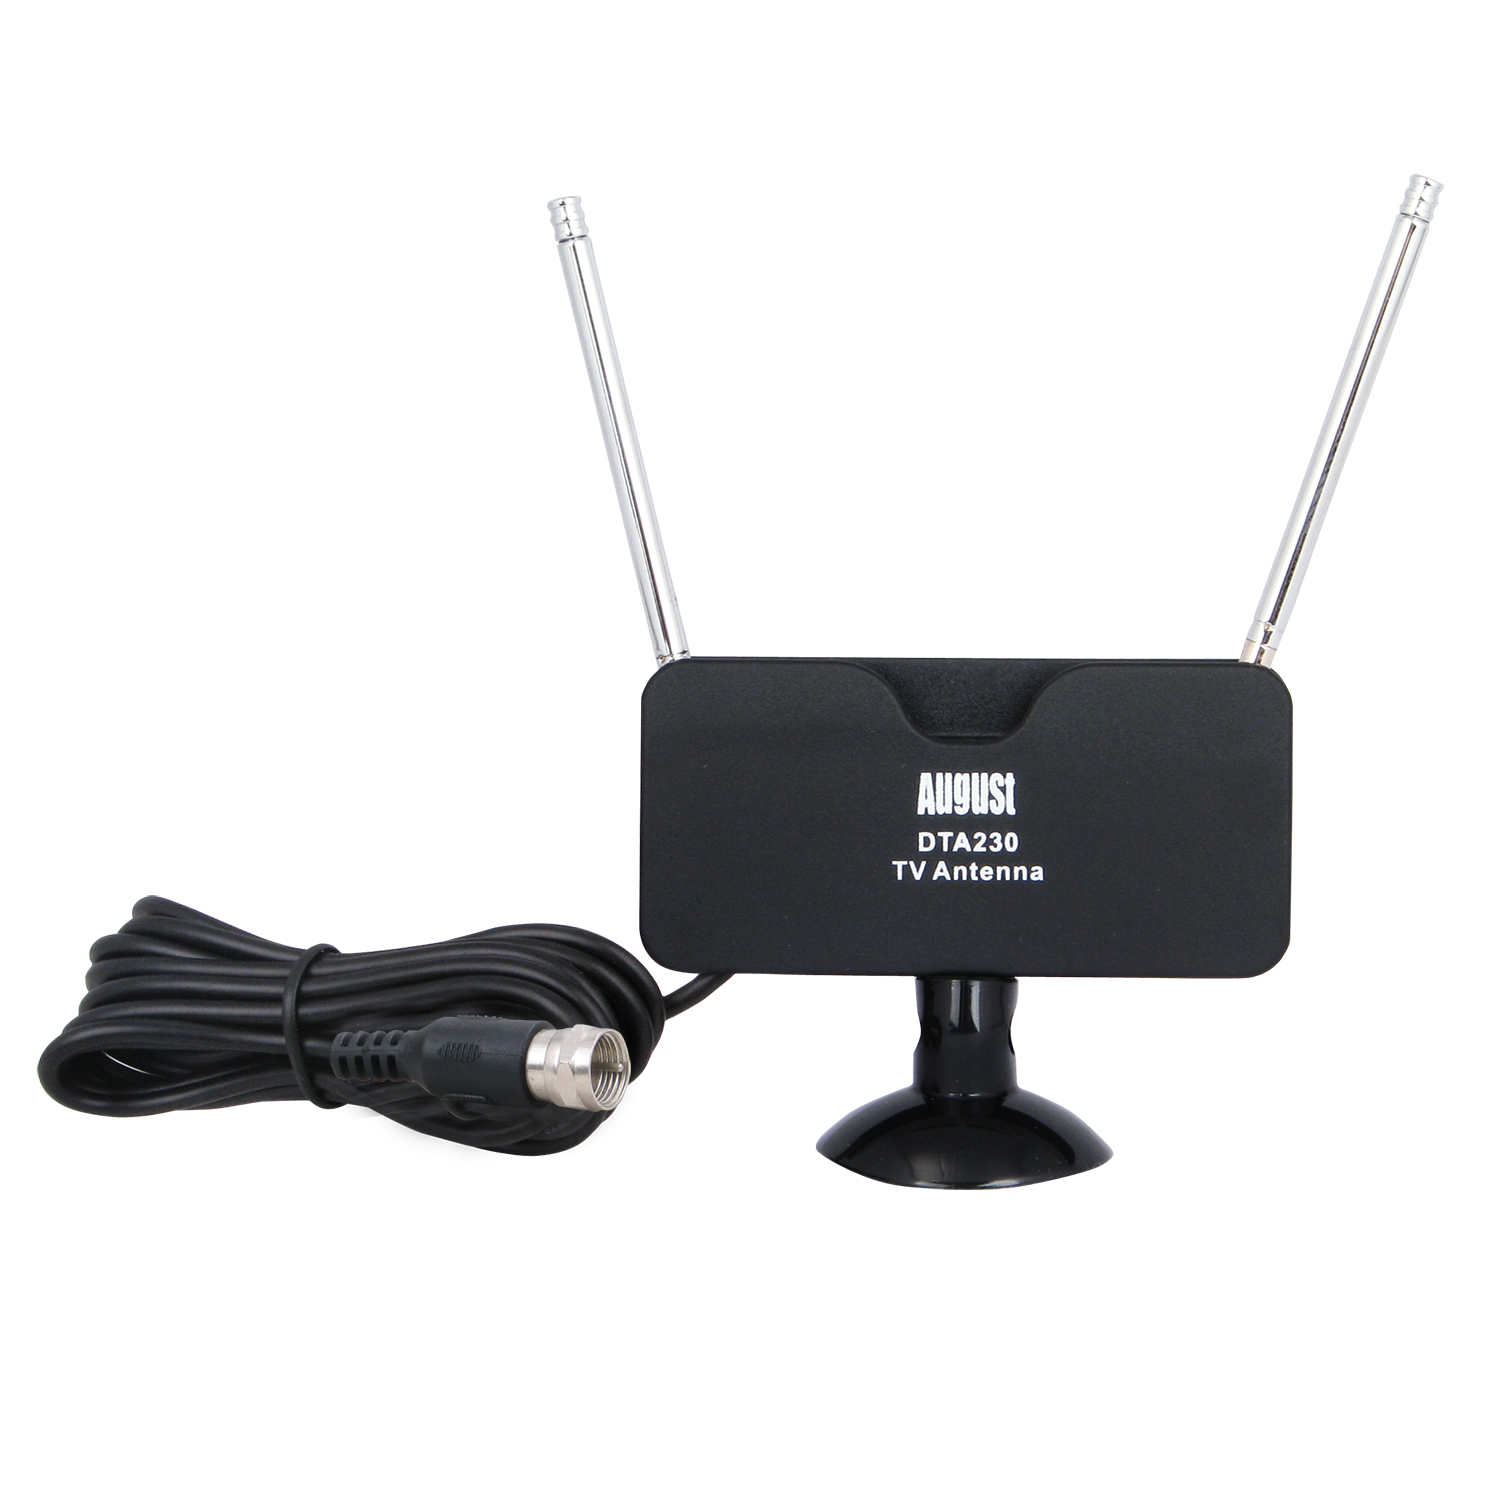 Mini Digital TV Antenna for Freeview TV and DAB Radio